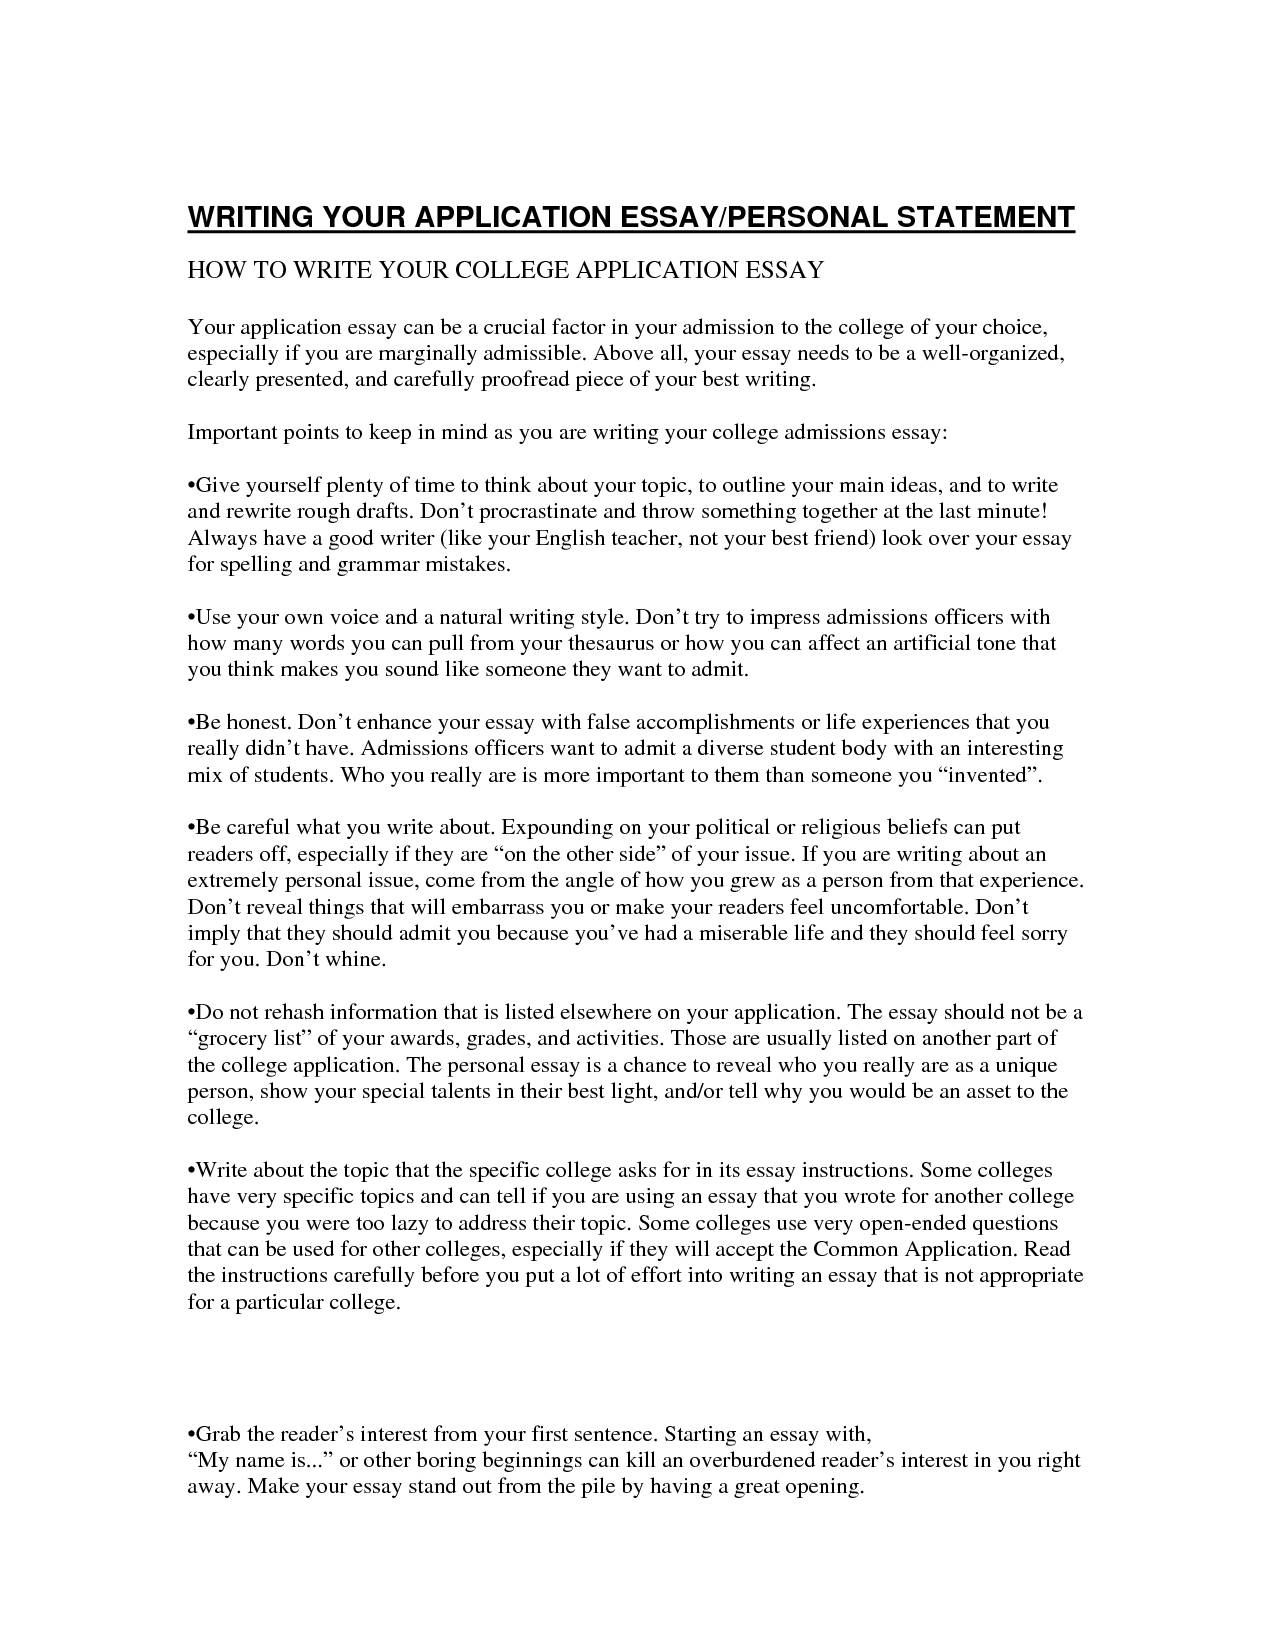 006 Scholarships That Don T Require Essays Essay Remarkable Are There Any Don't 2019 Canadian Full